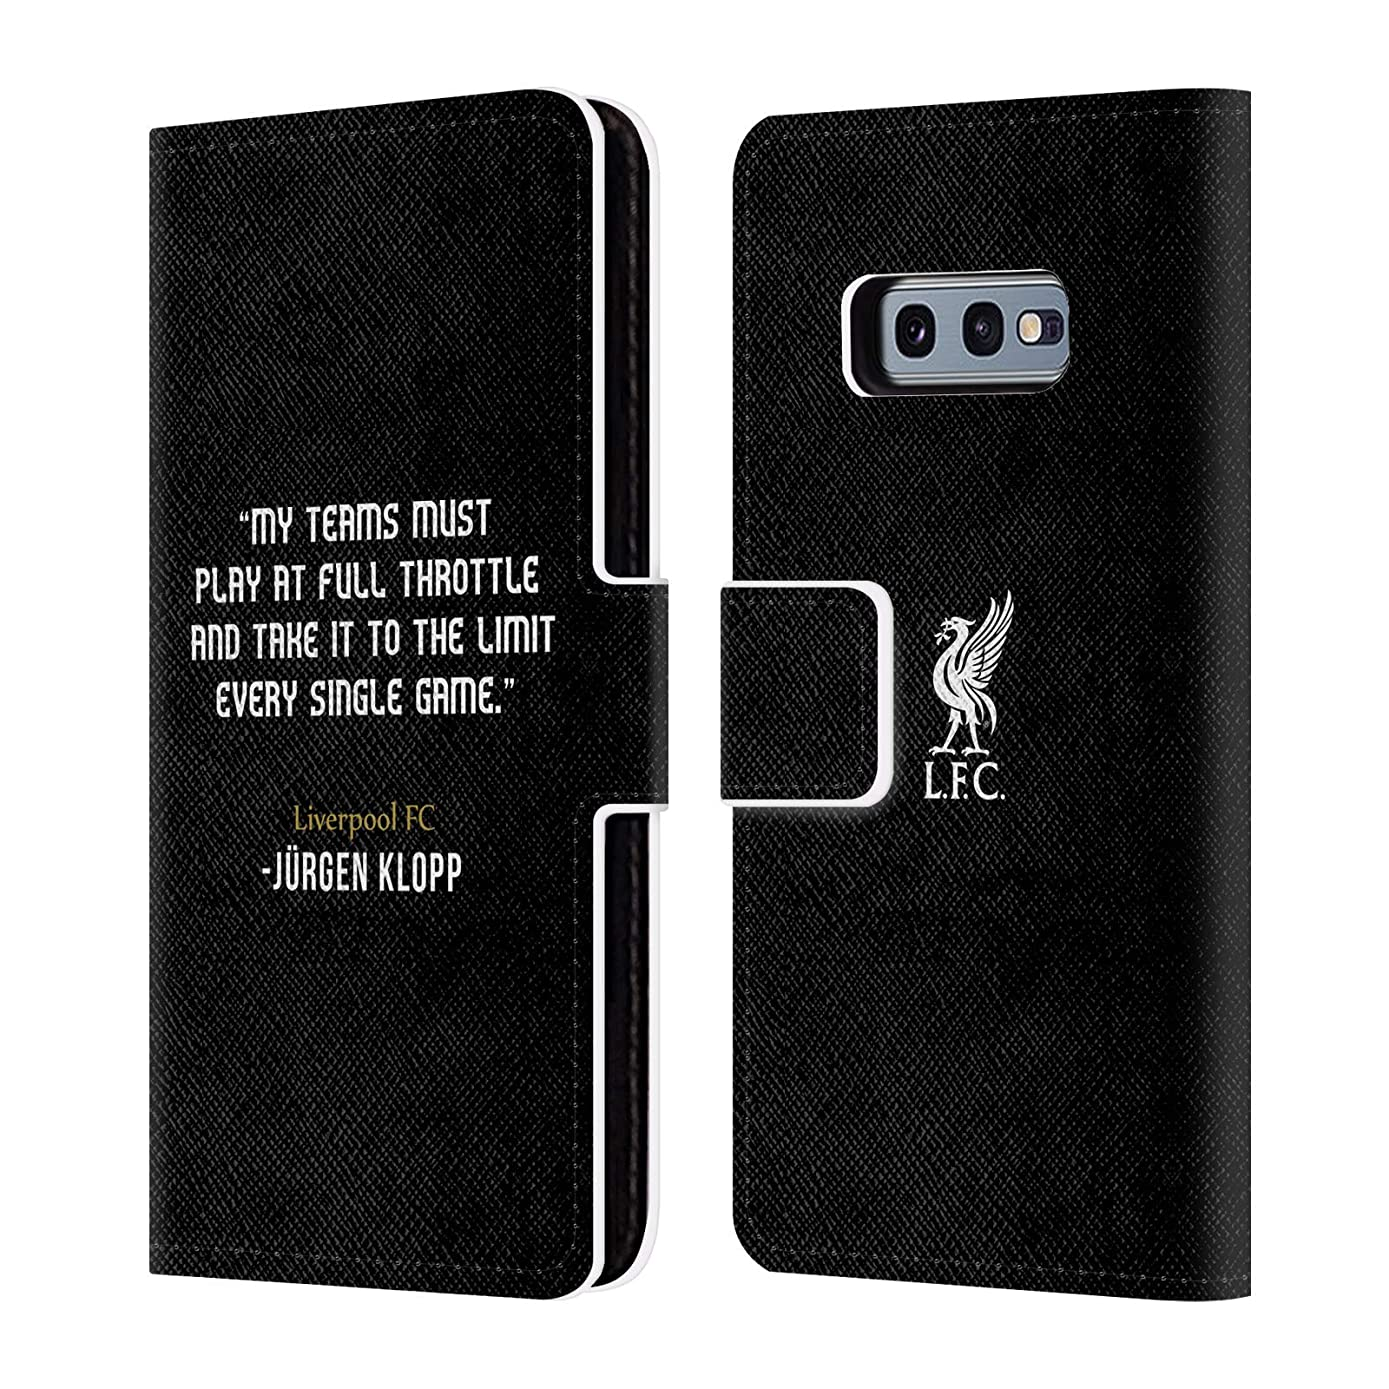 Official Liverpool Football Club Full Throttle Klopp Quotes PU Leather Book Wallet Case Cover Compatible for Samsung Galaxy S10e